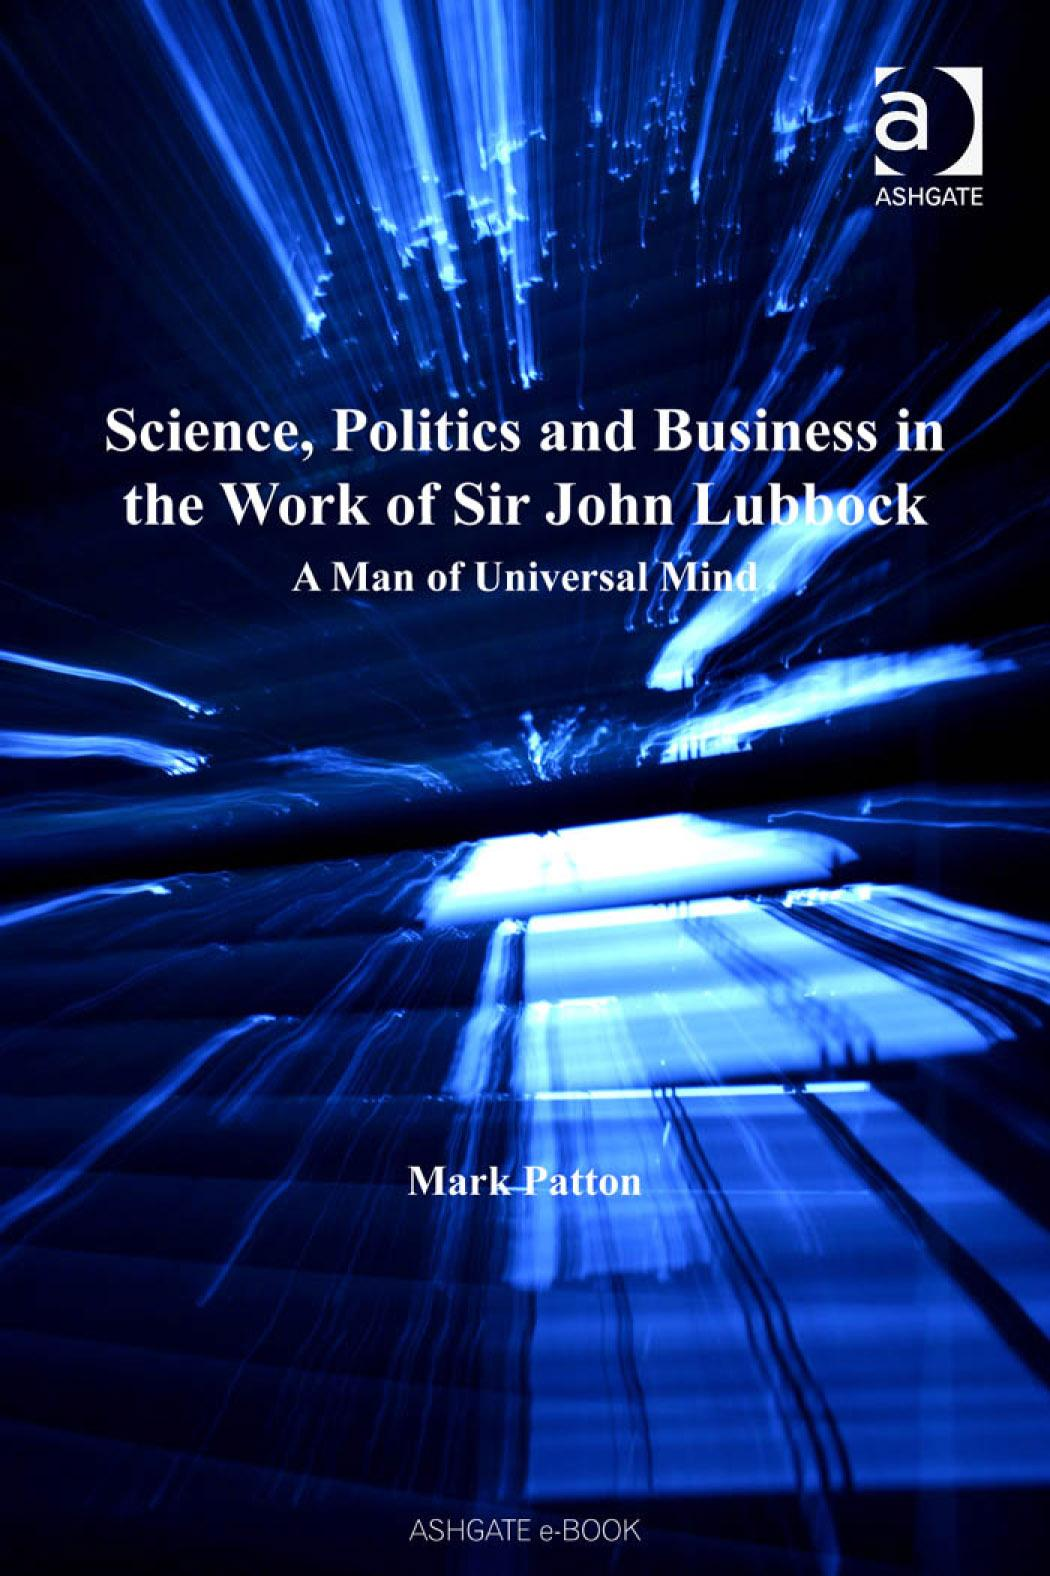 Science, Politics and Business in the Work of Sir John Lubbock: A Man of Universal Mind. Science, Technology and Culture, 1700-1945. EB9780754686606